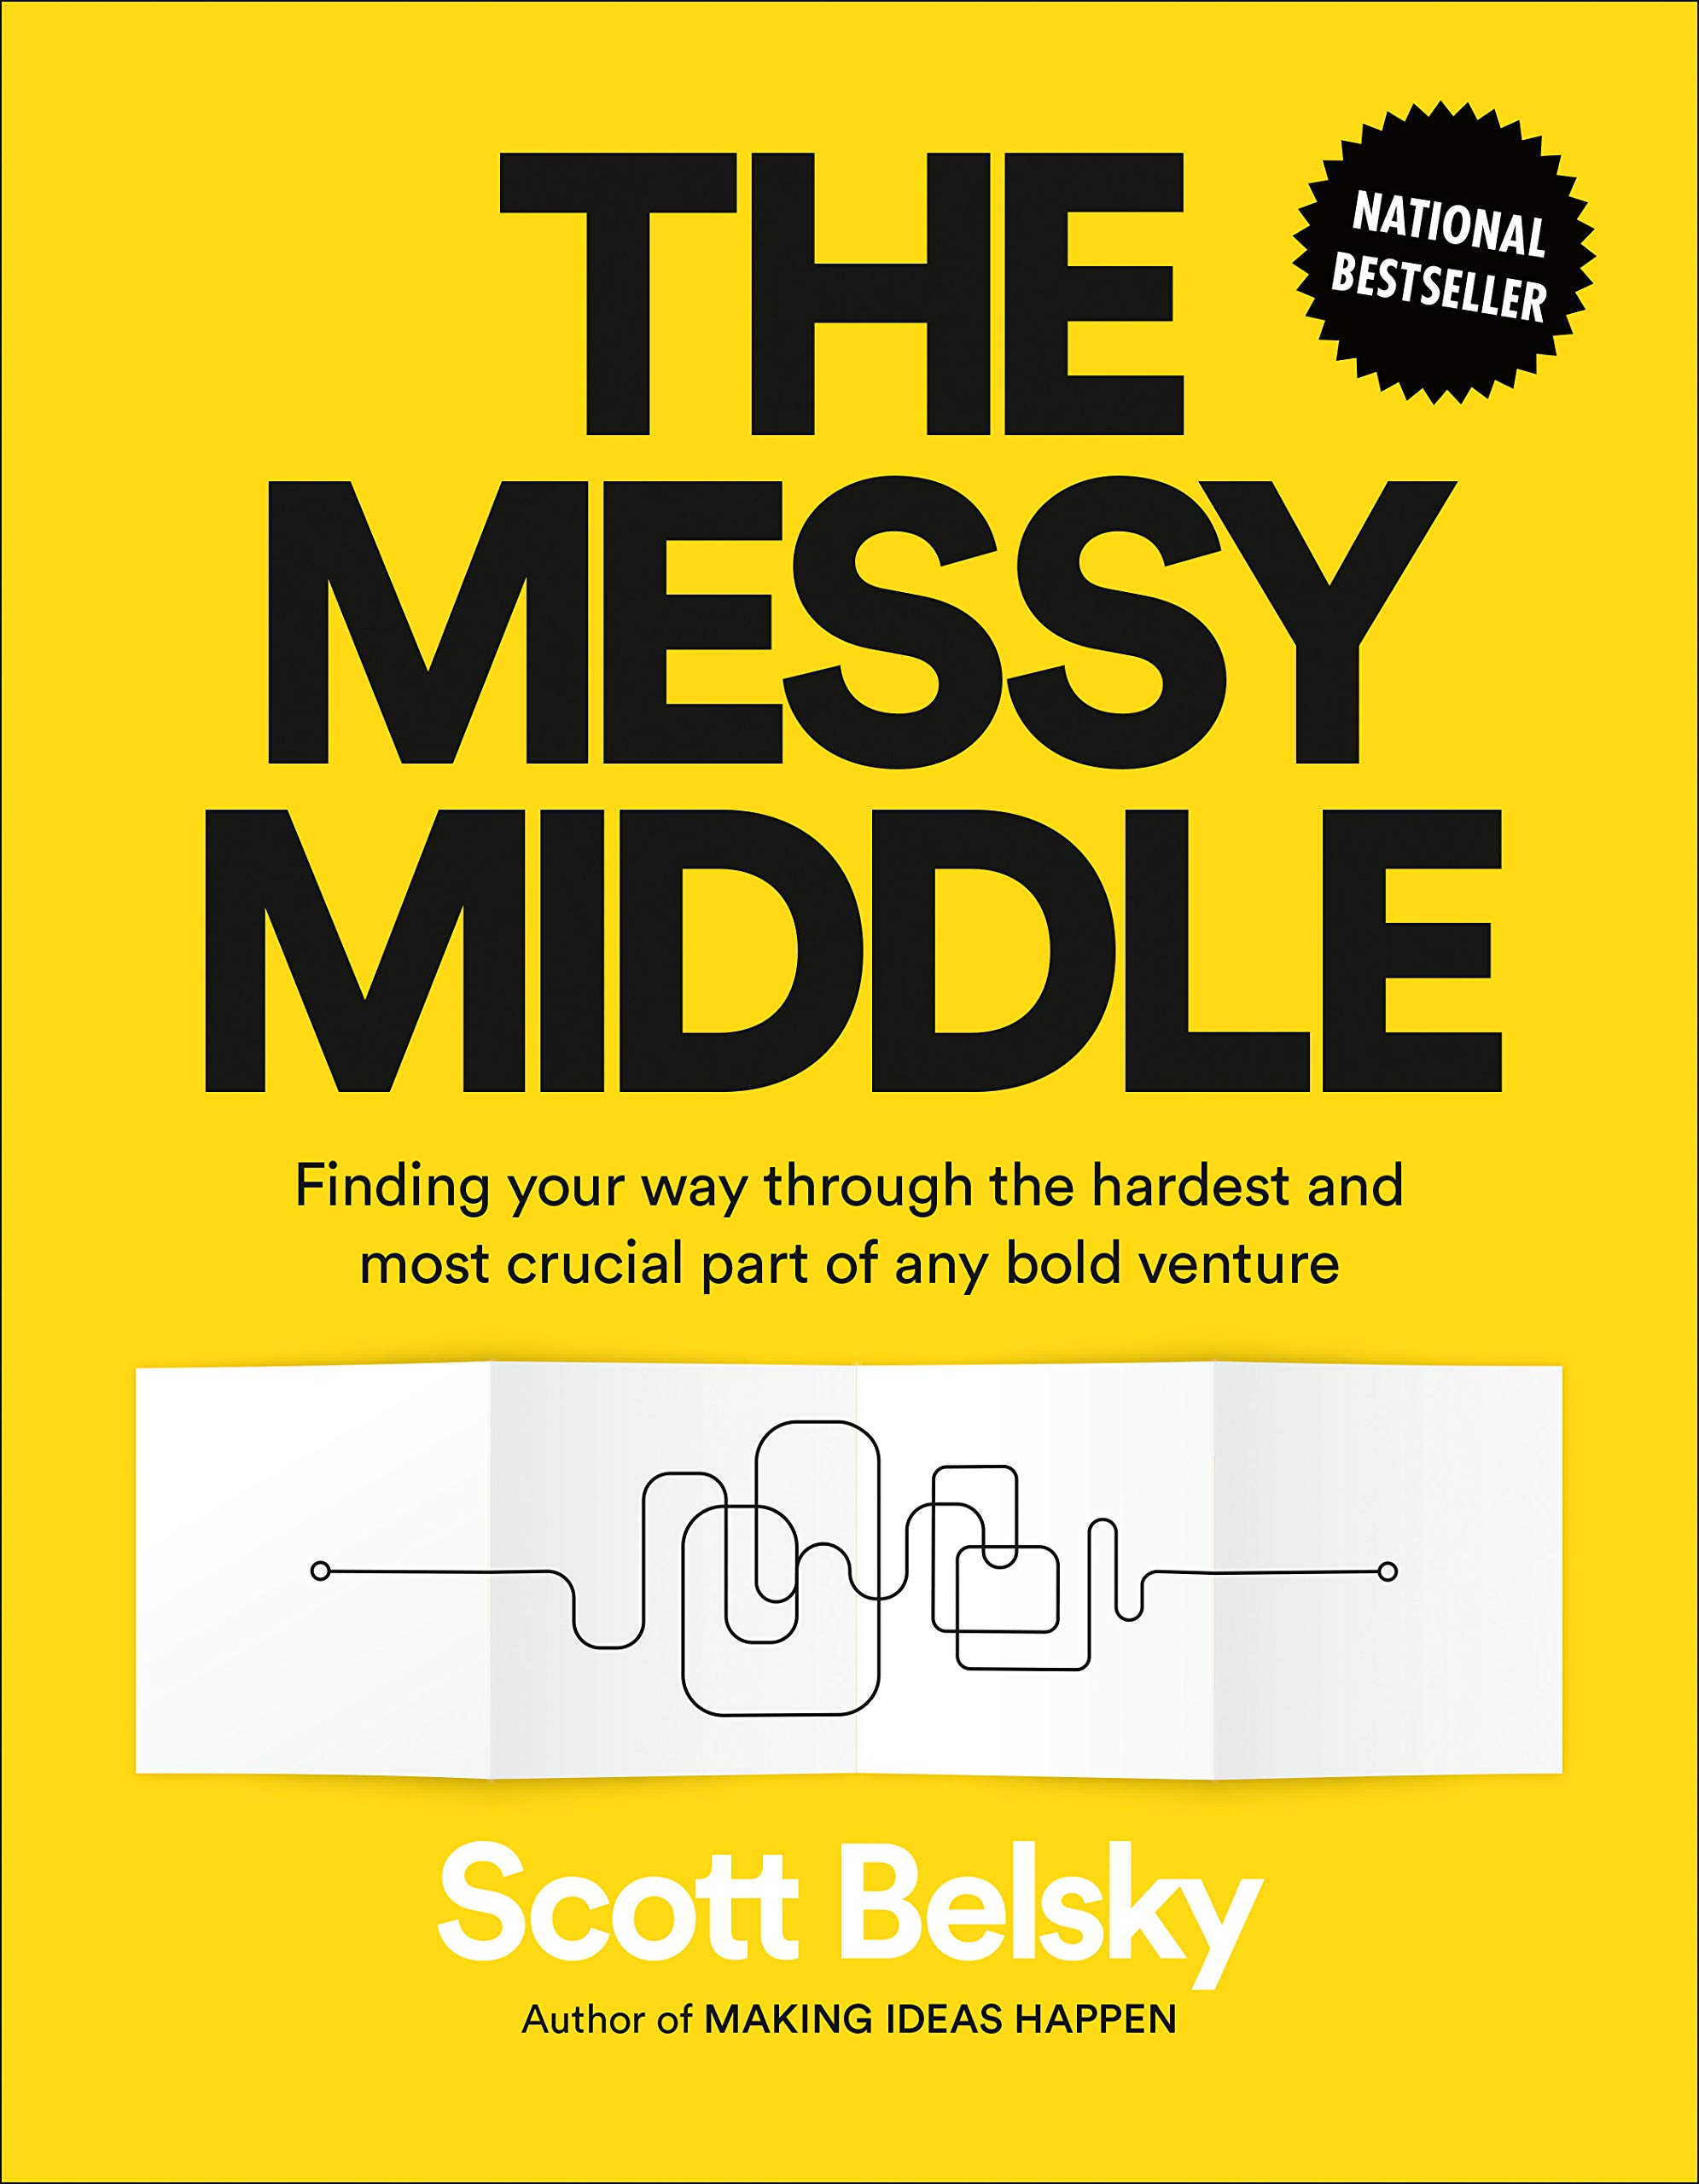 Αποτέλεσμα εικόνας για The Messy Middle: Finding Your Way Through the Hardest and Most Crucial Part of Any Bold Venture by Scott Belsky